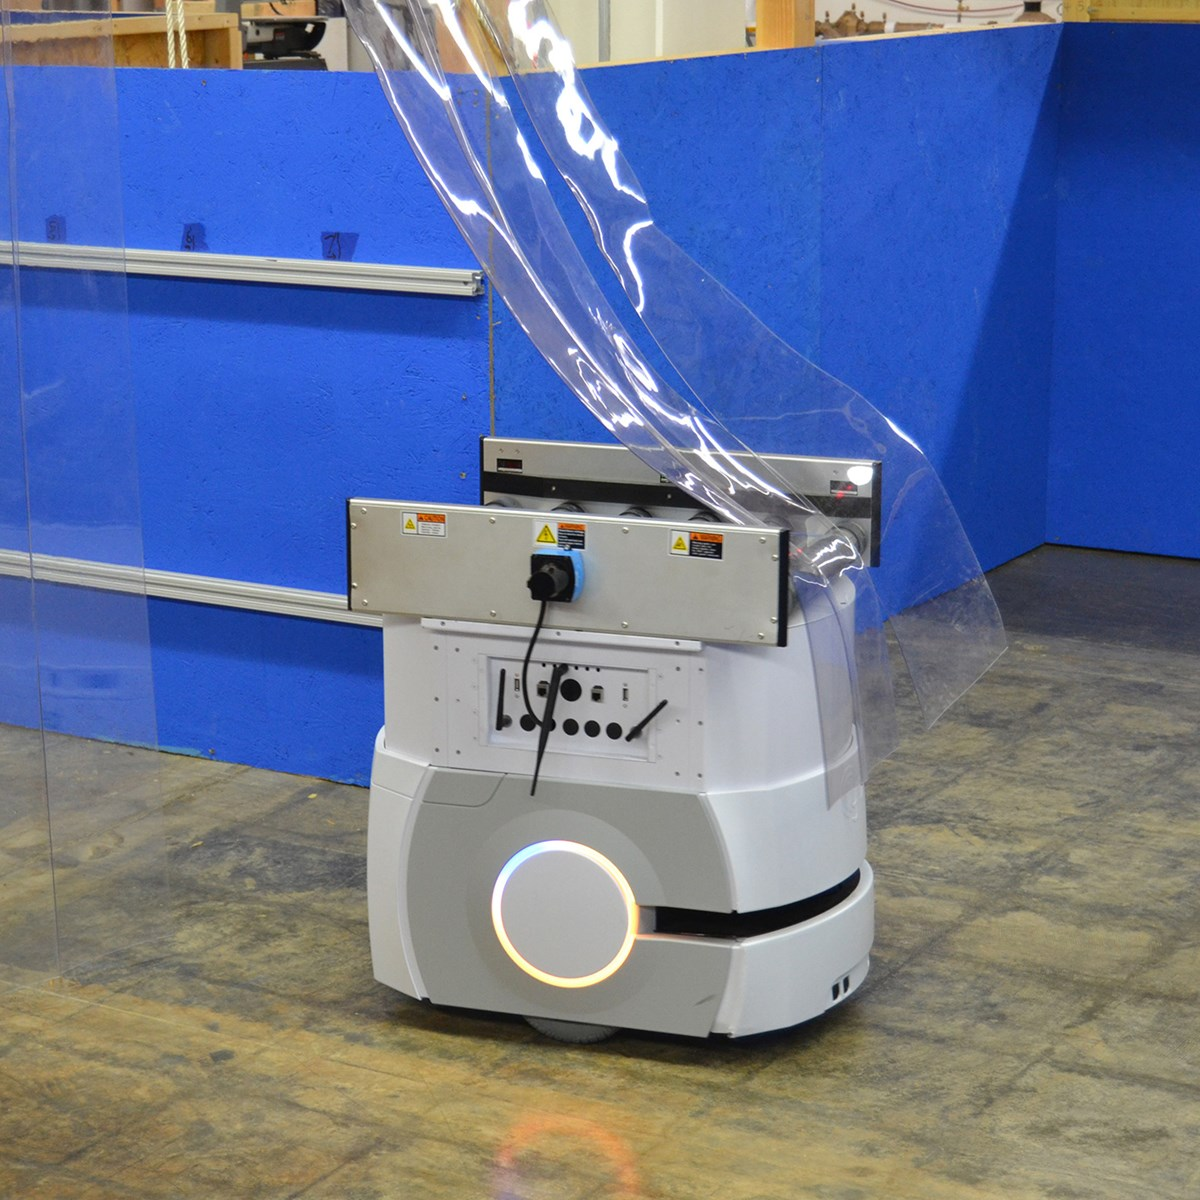 Omron Adept Lynx robot navigates through a test apparatus for soft partitions.